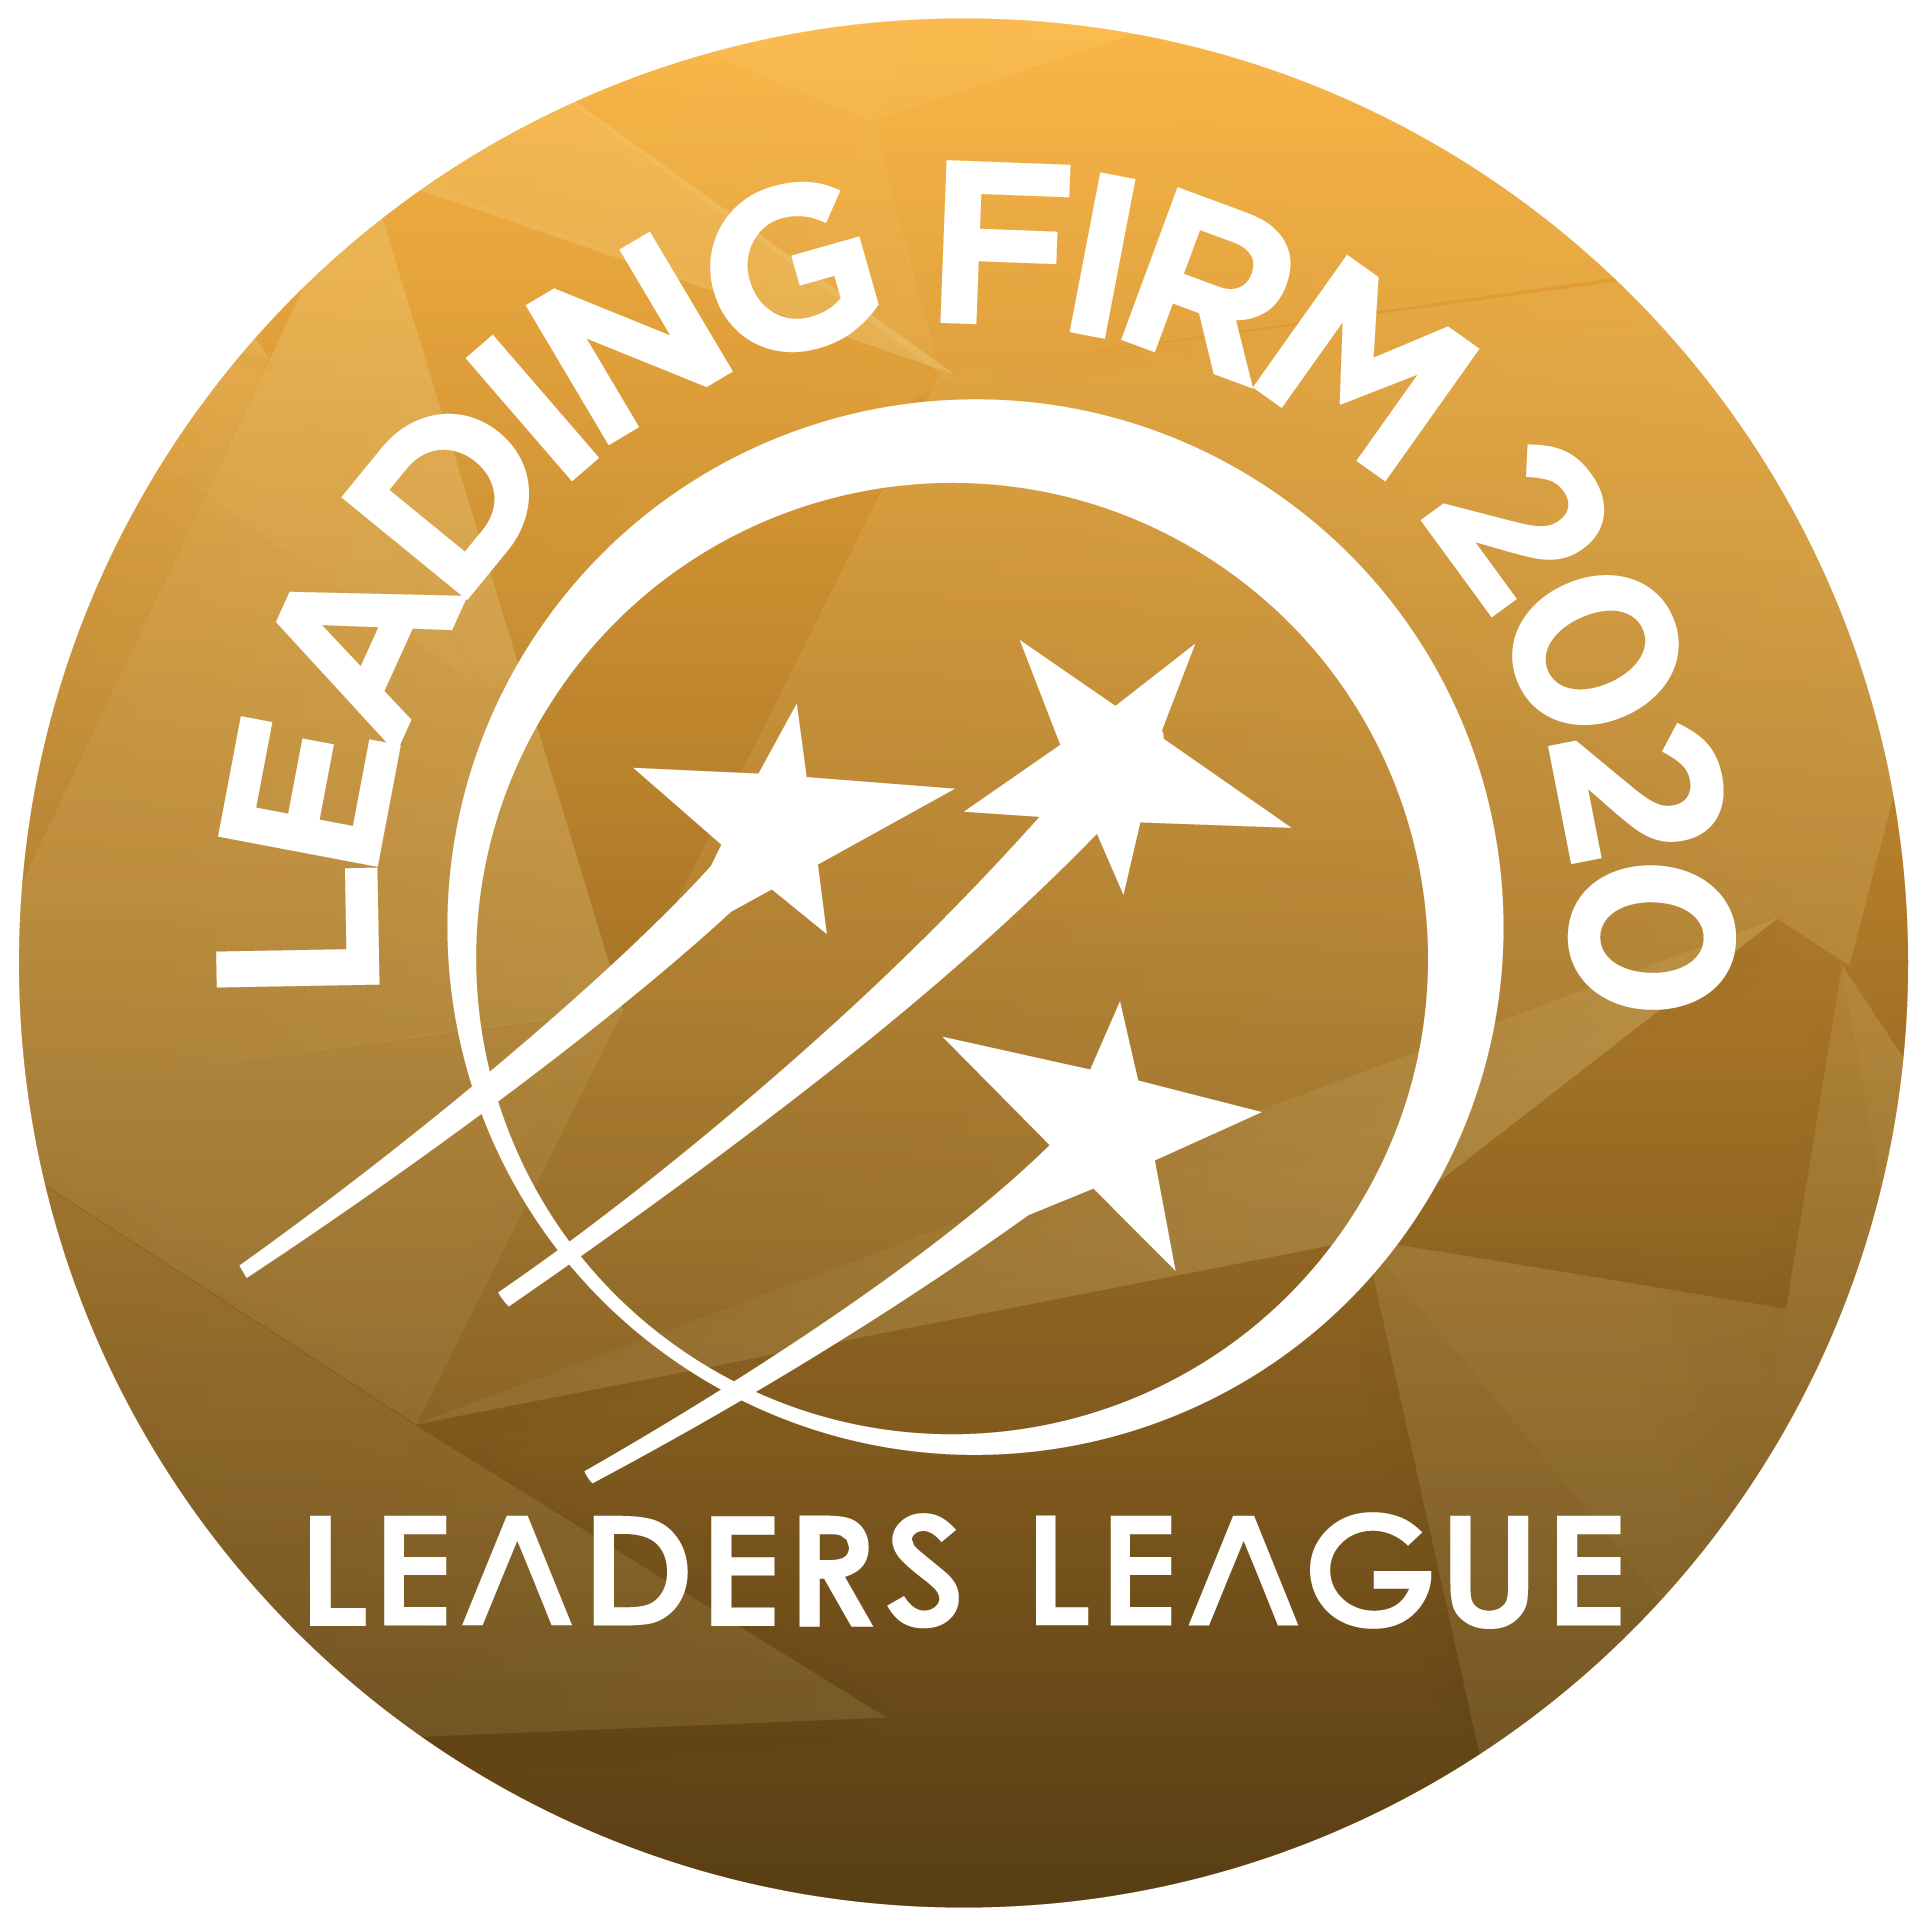 Leaders League Brasil 2020